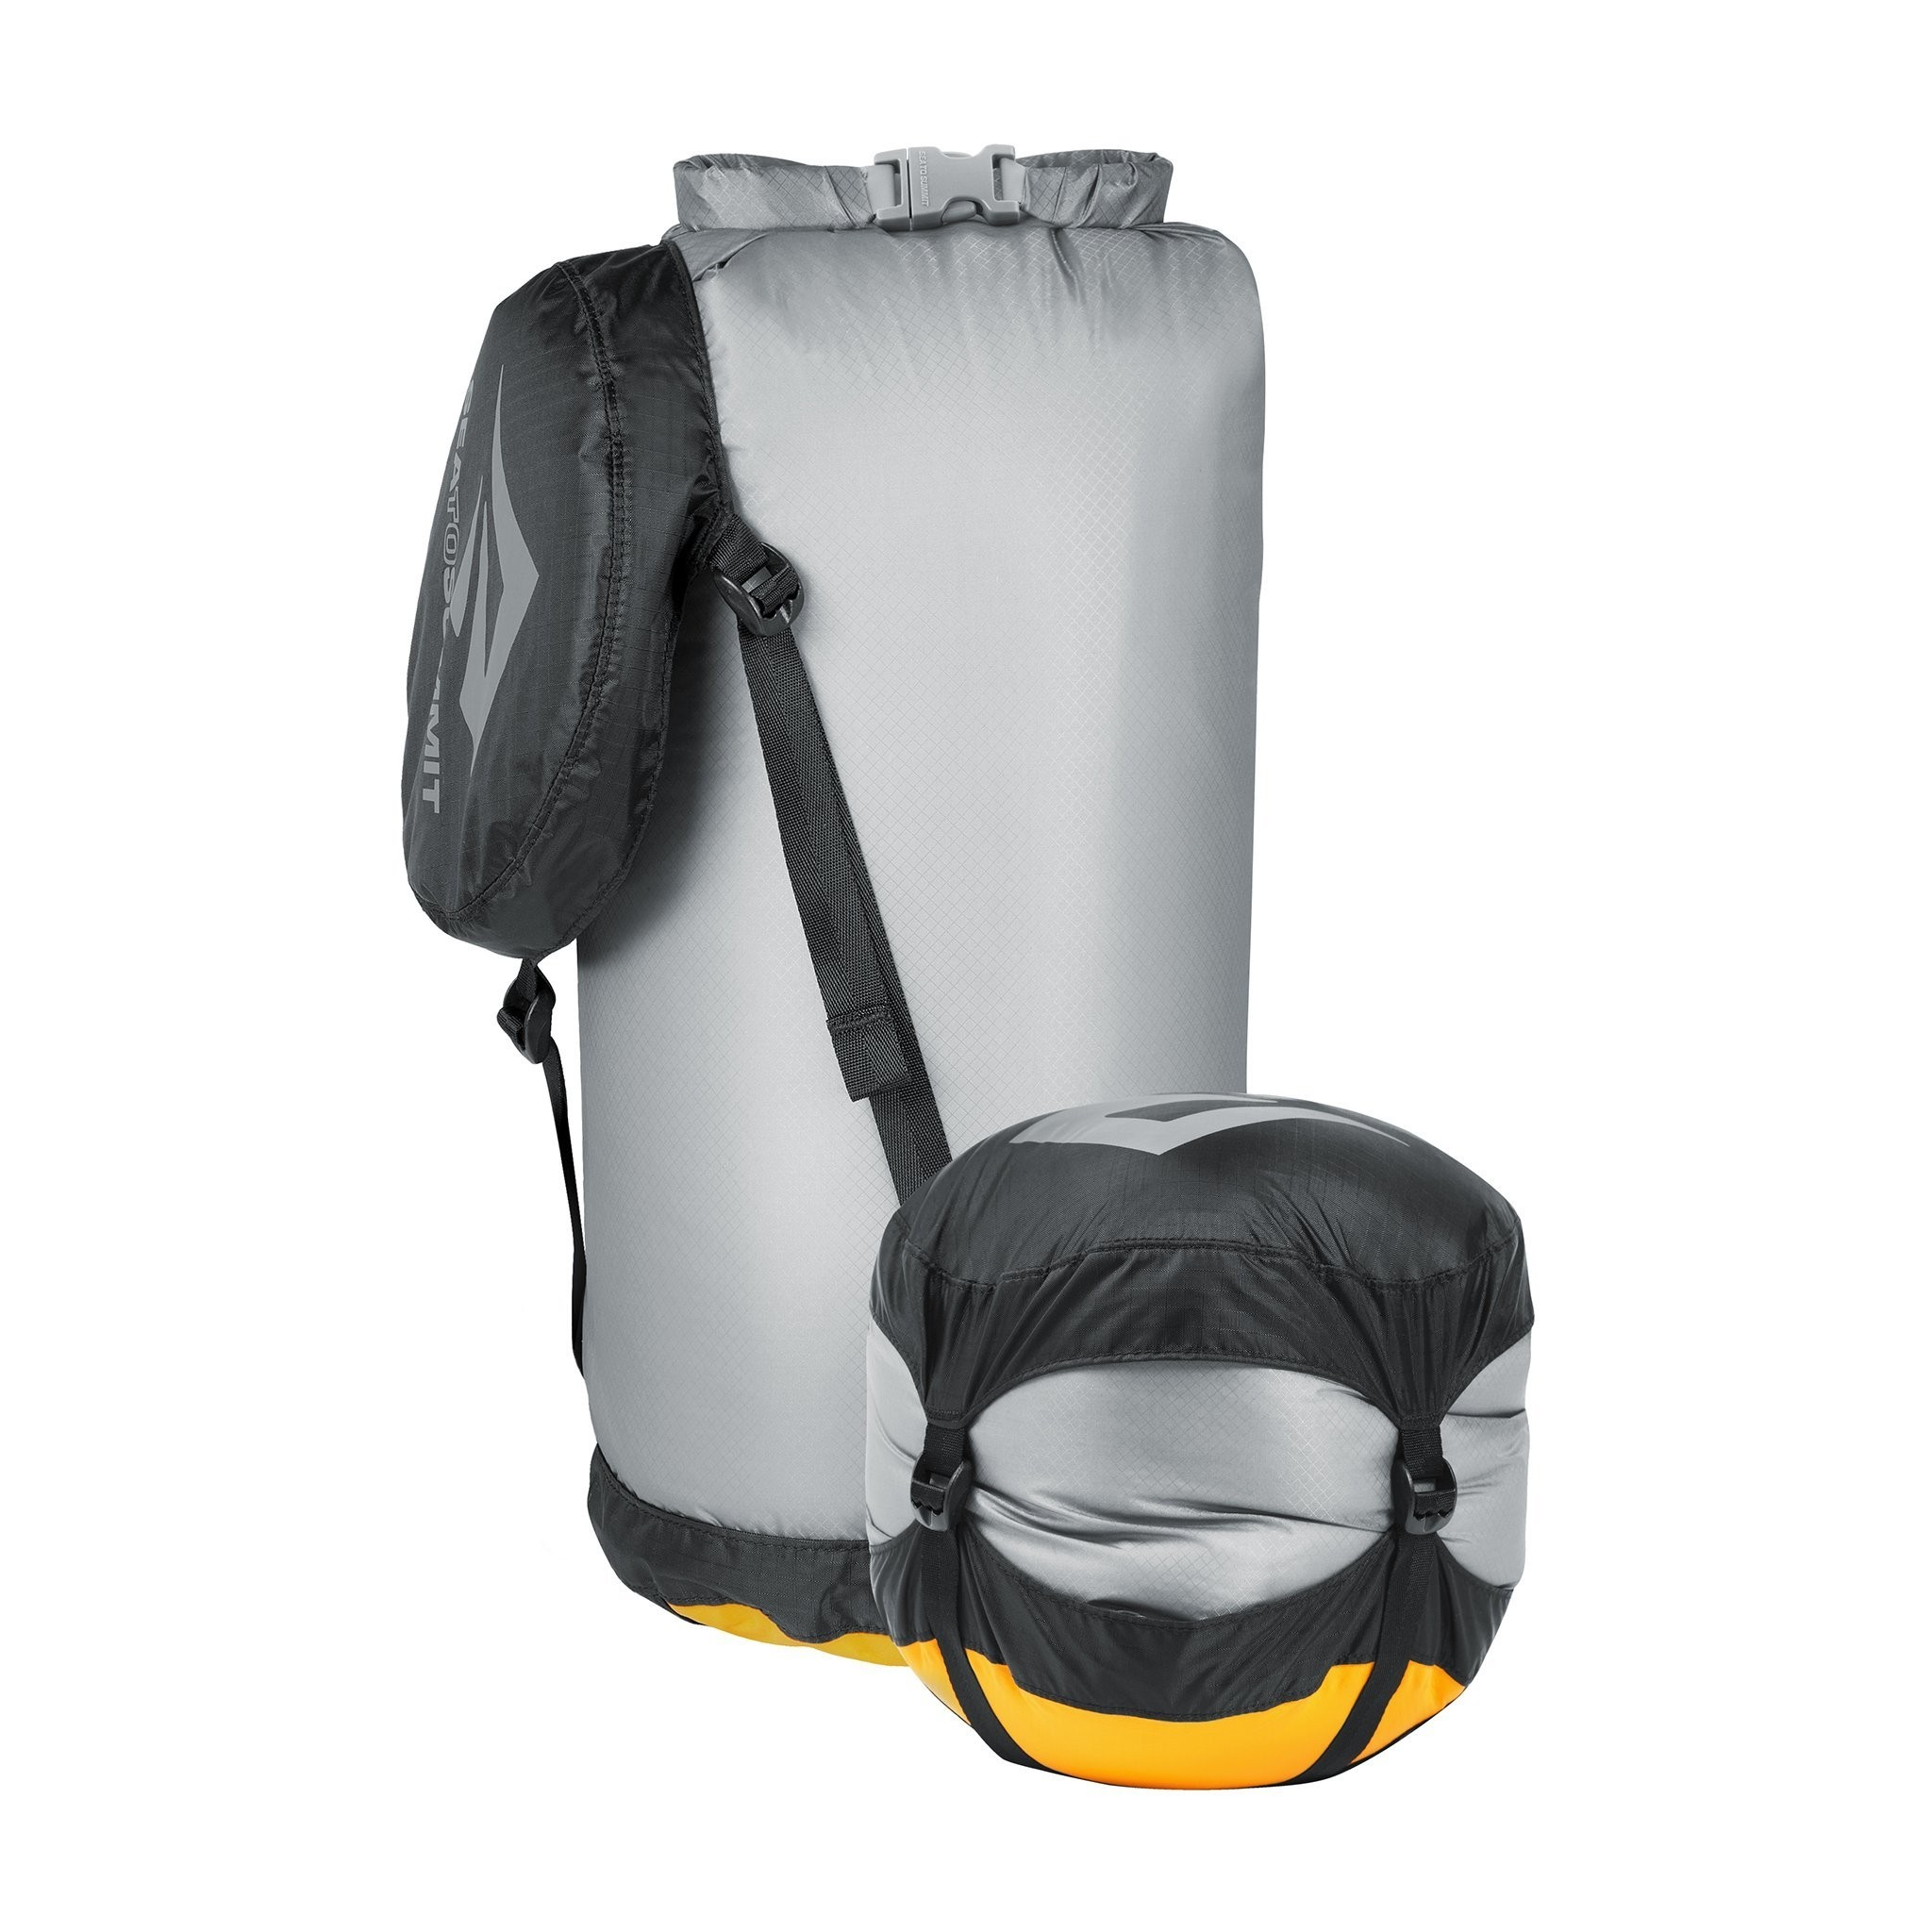 Sea to Summit Ultra-Sil eVent Dry Compression Sack S - 10L